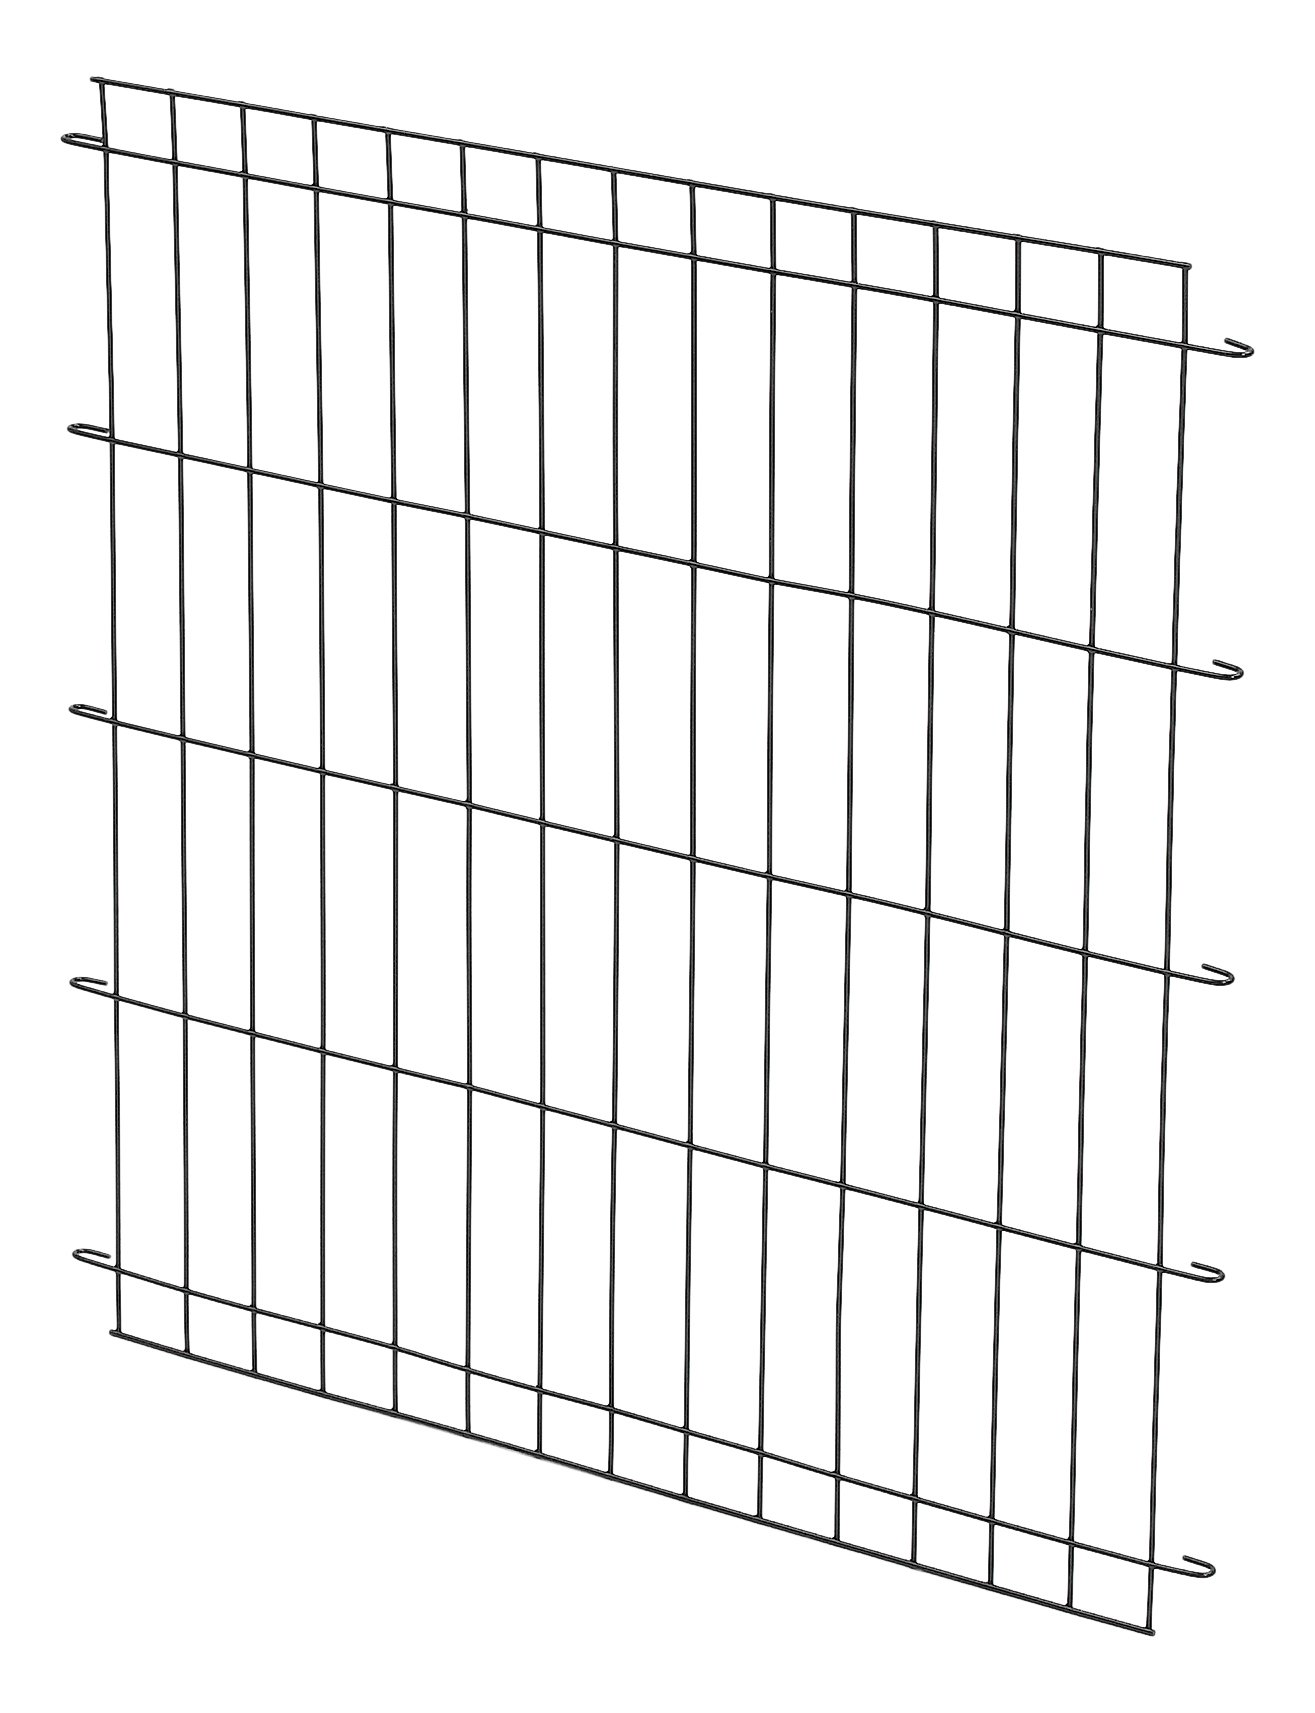 MidWest Homes for Pets Divider Panel Fits Models 1336TD, 1536 and 1536DD by MidWest Homes for Pets